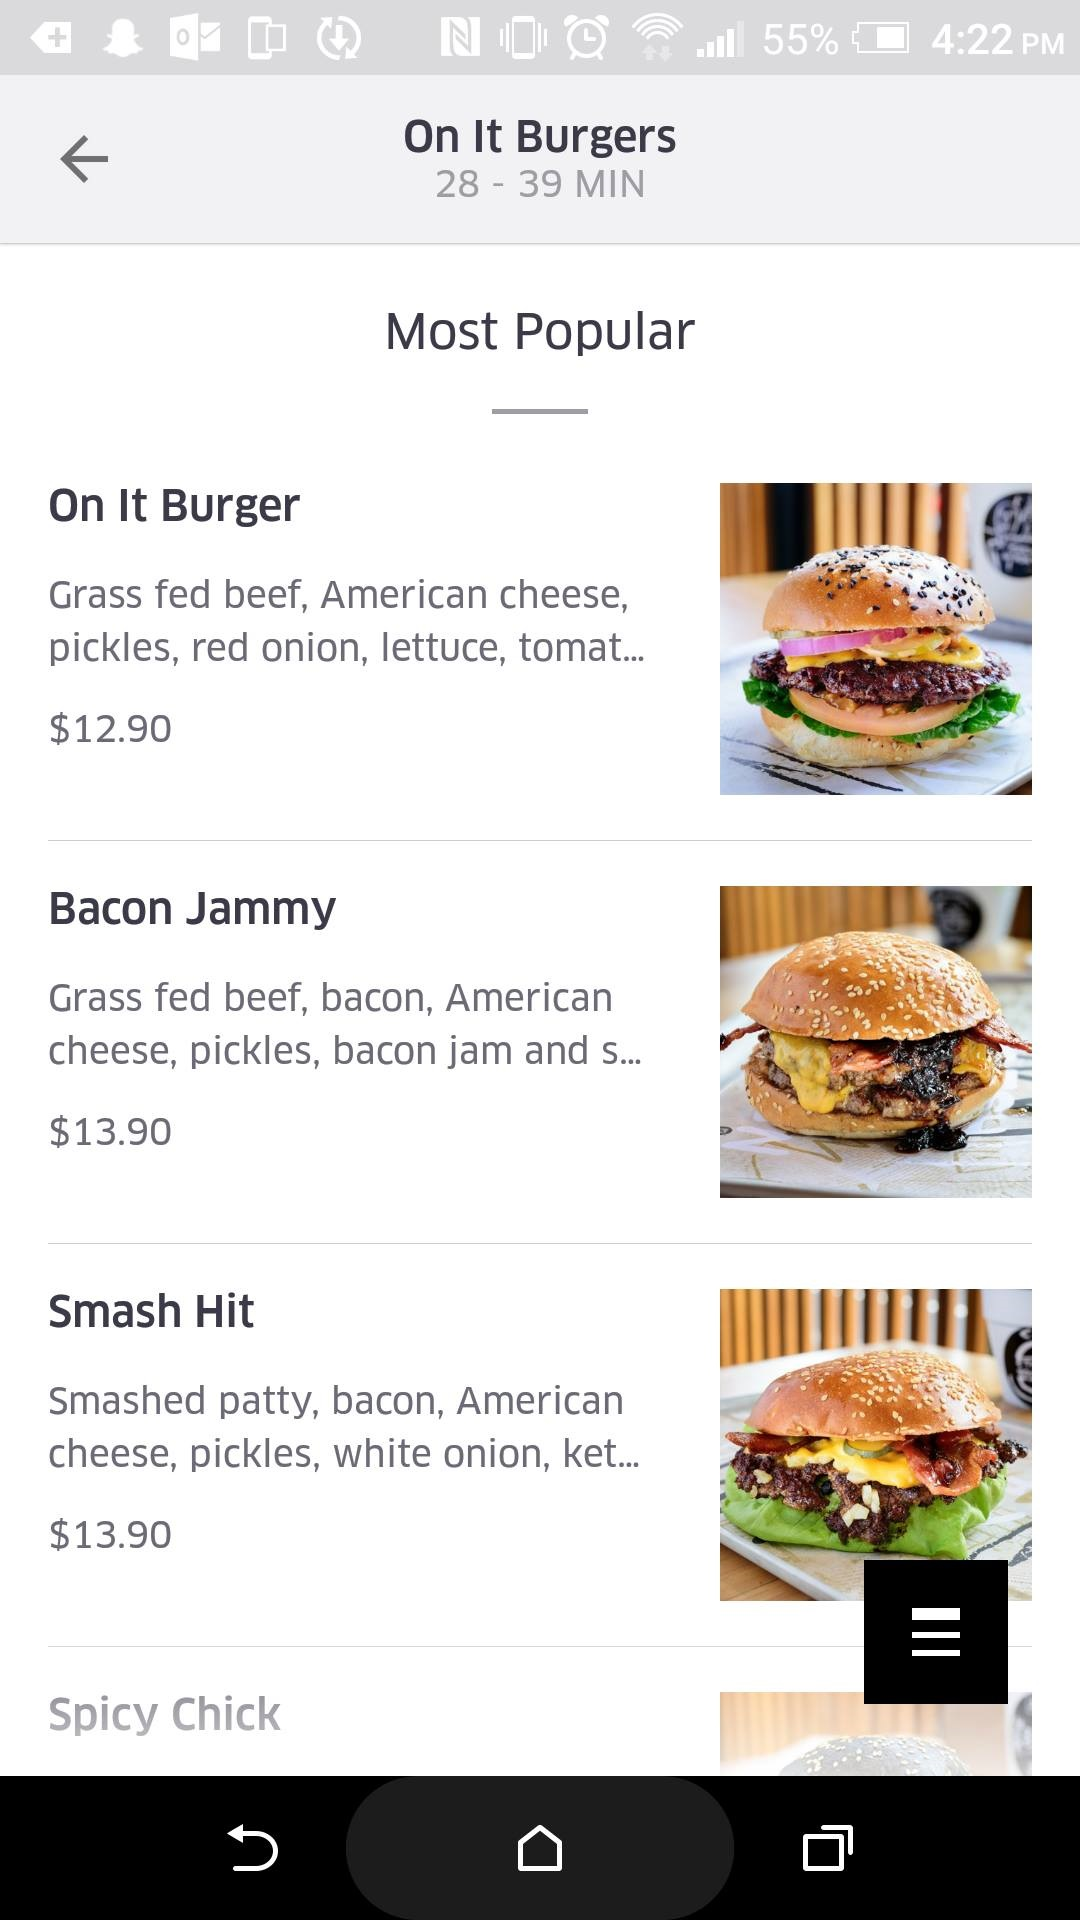 UberEats VS Deliveroo: Which App Has The Better User Experience?